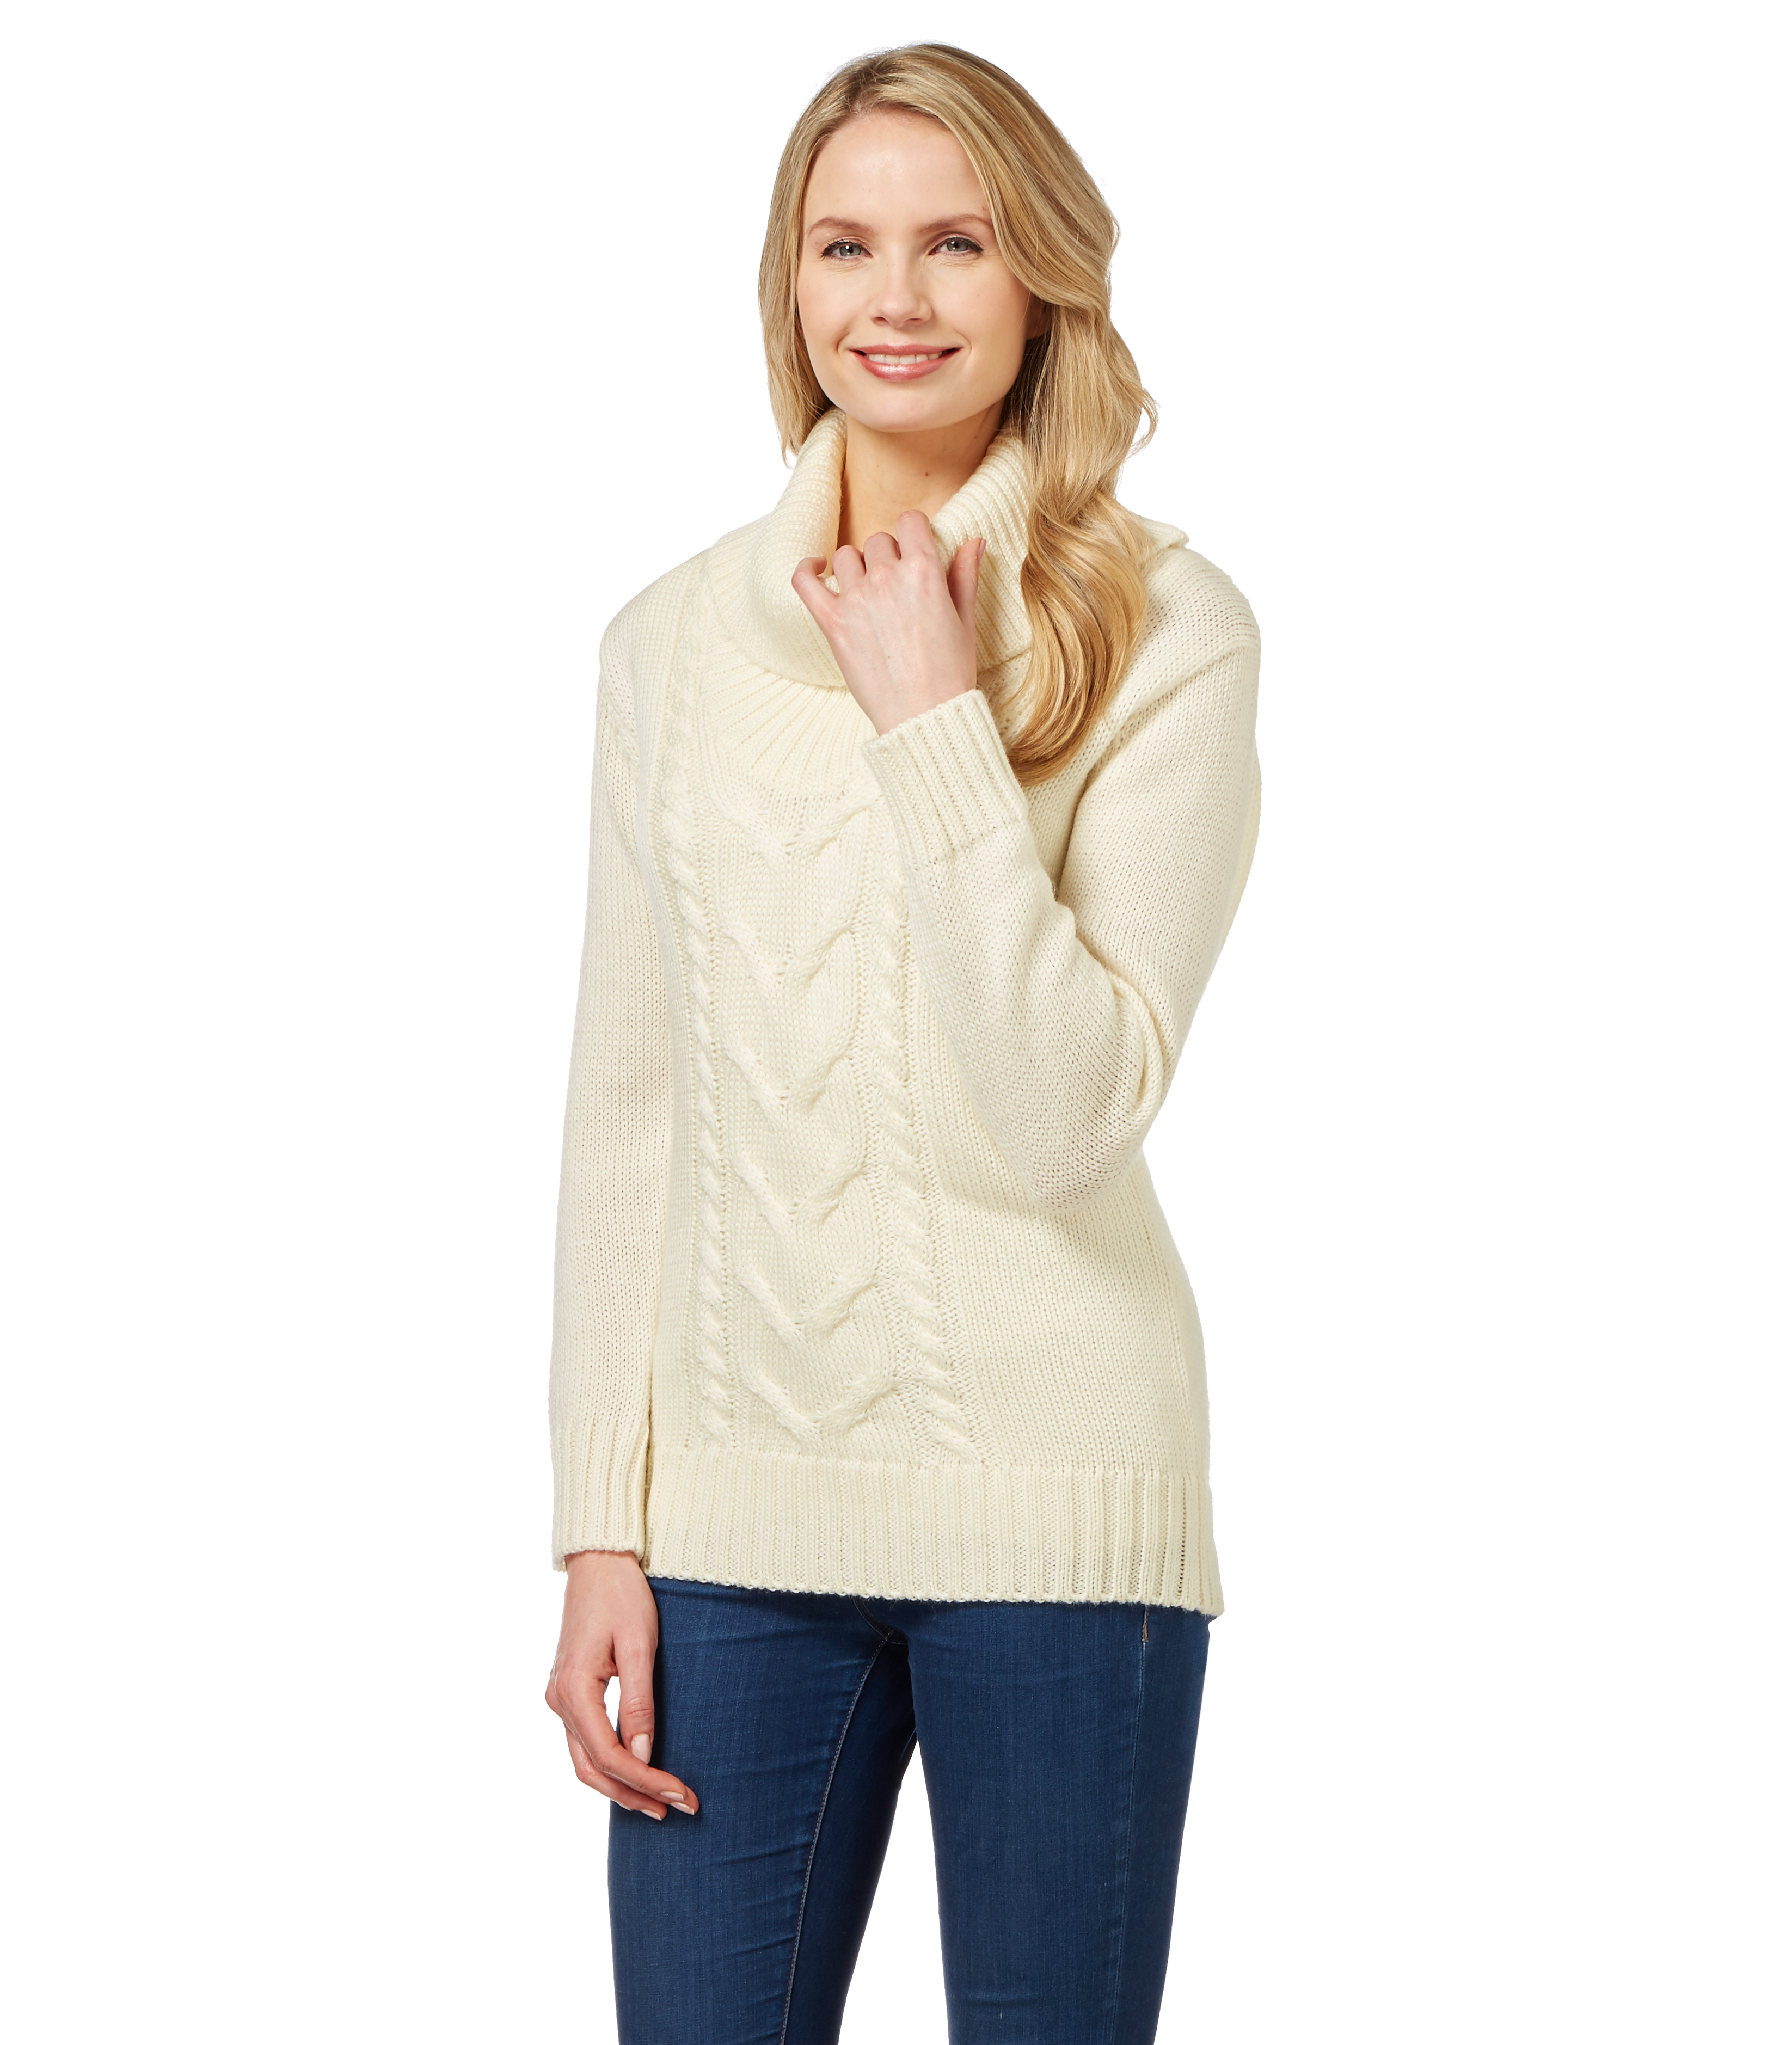 Long Sleeve Sweaters: Free Shipping on orders over $45 at bookbestnj.cf - Your Online Women's Sweaters Store! Simply Ravishing Women's Long Sleeve Stretchable Cowl Sweater. 9 Reviews. SALE. Quick View. See Price in Cart QZUnique Women Lace Up Front V Neck Knit Pullover Long Sleeves Sweater. Quick View.